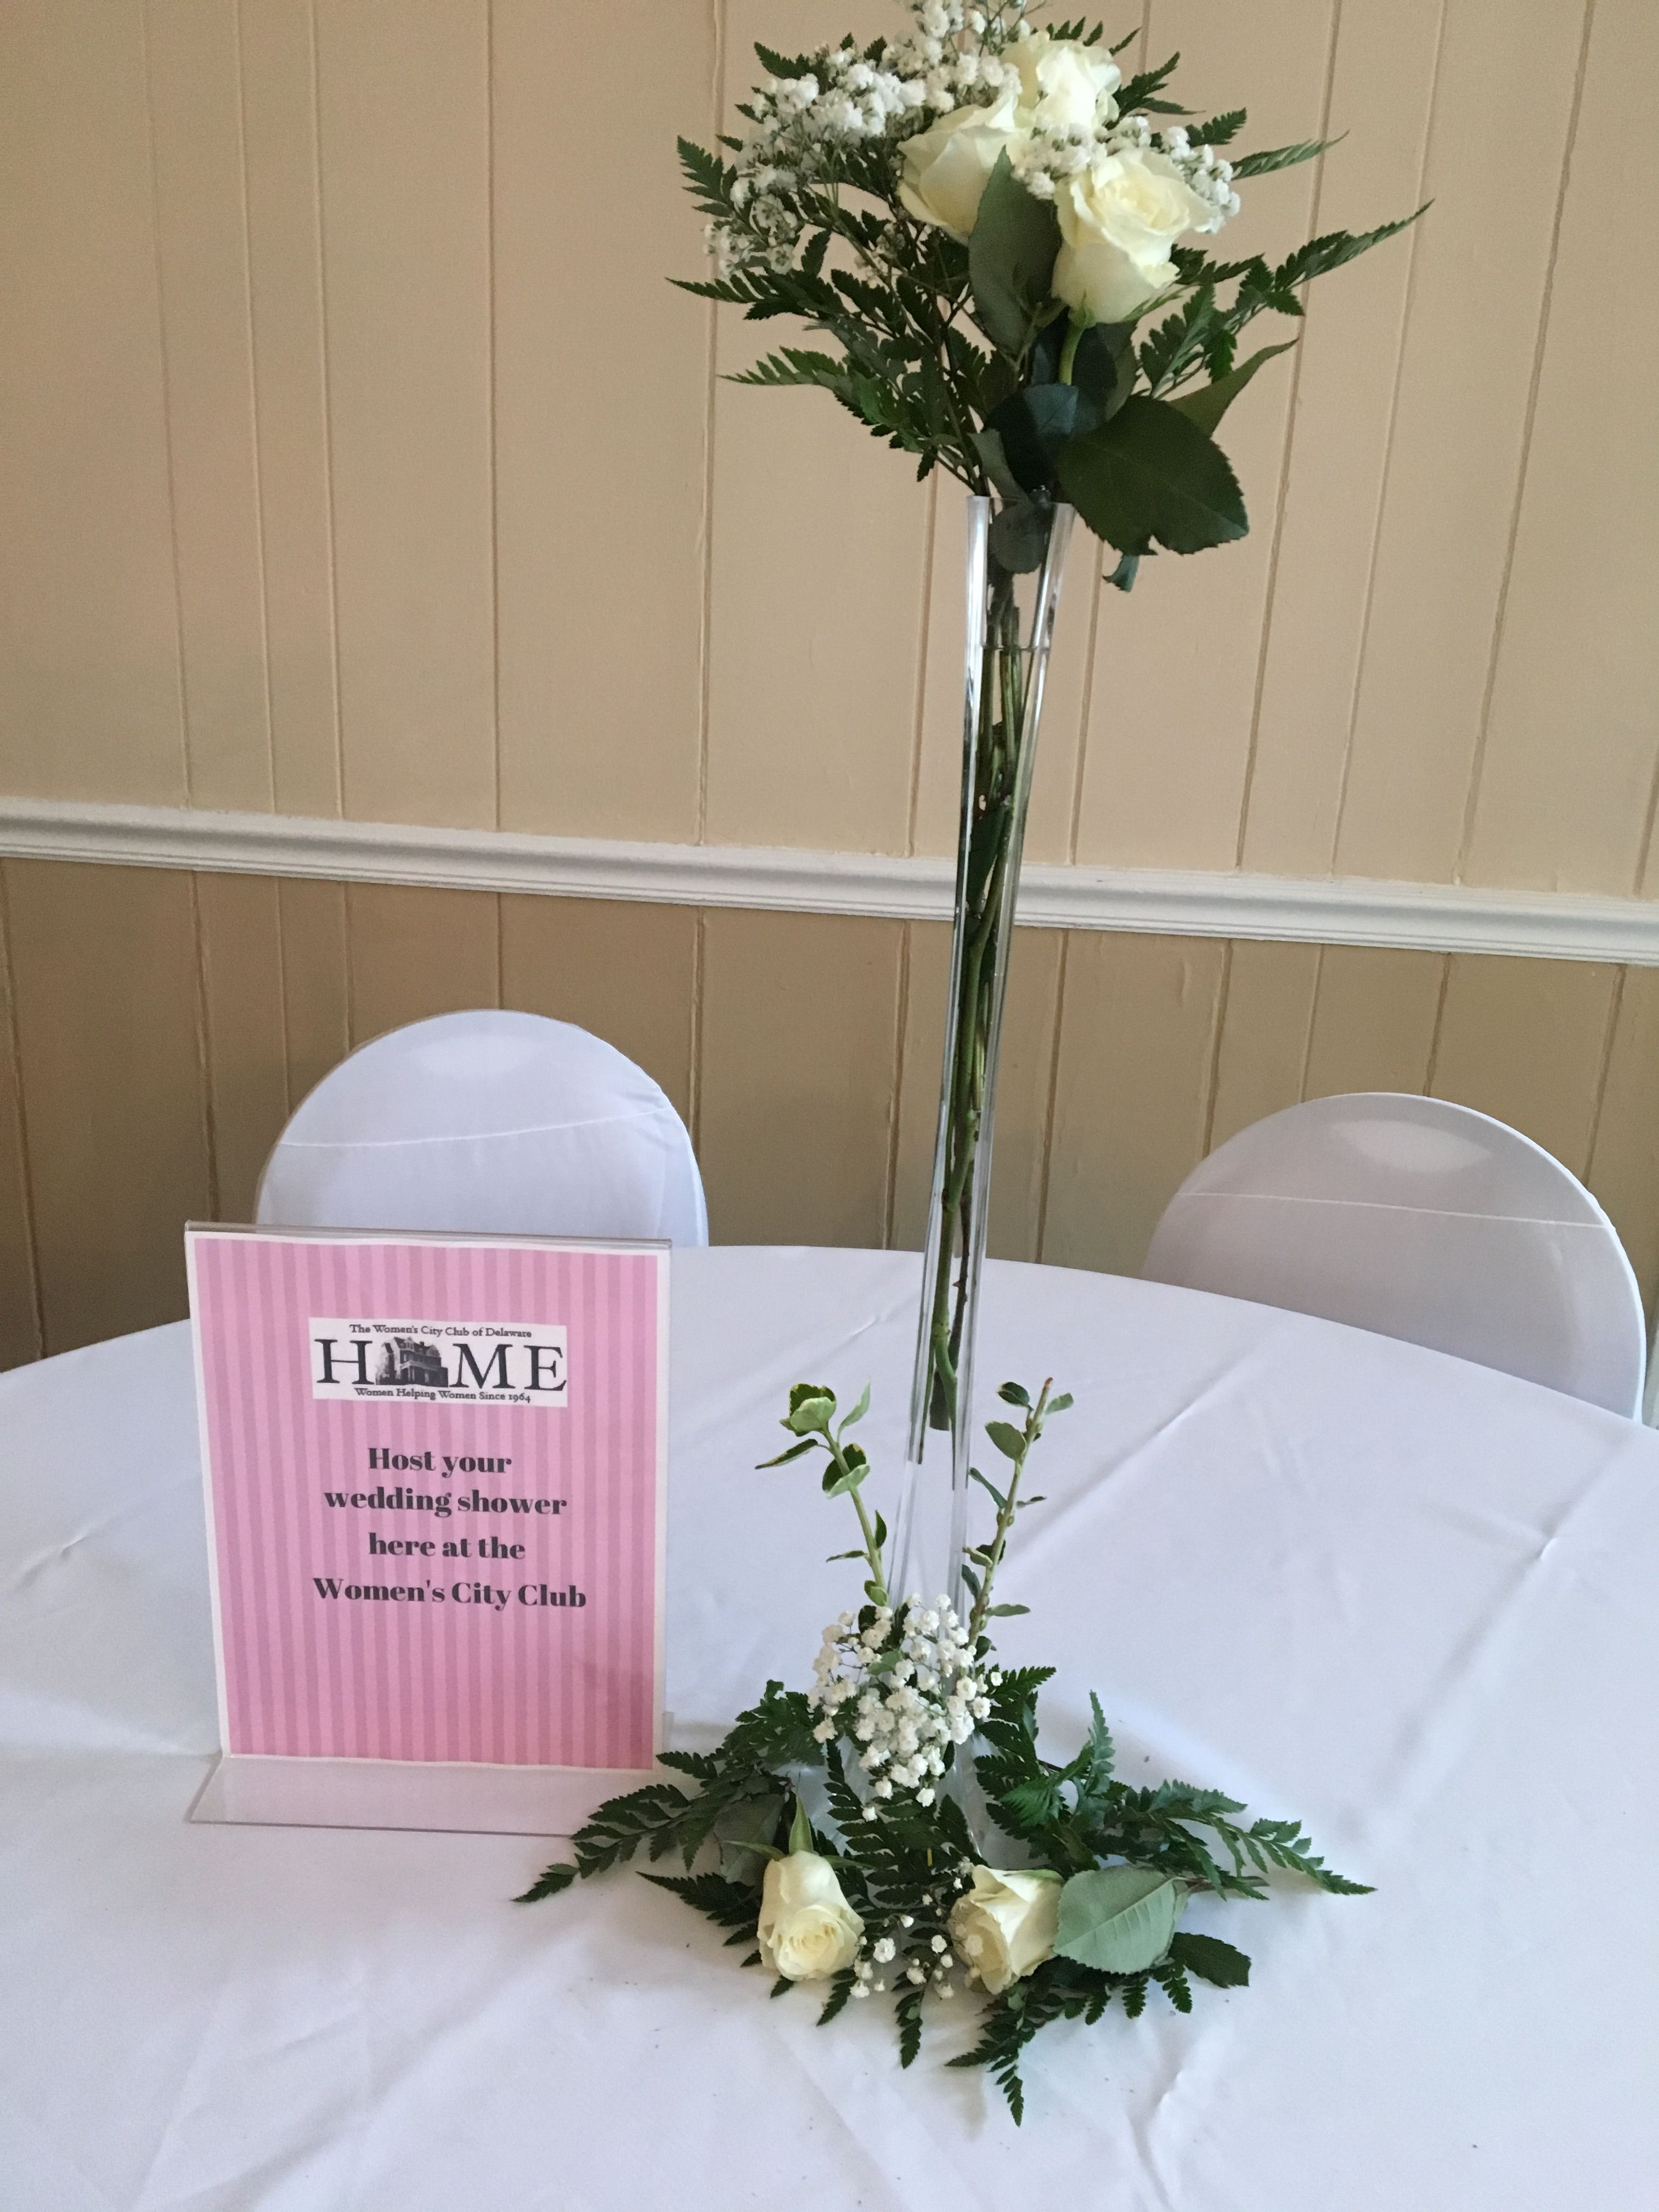 This is the centerpiece we made for the wedding table for the wccus